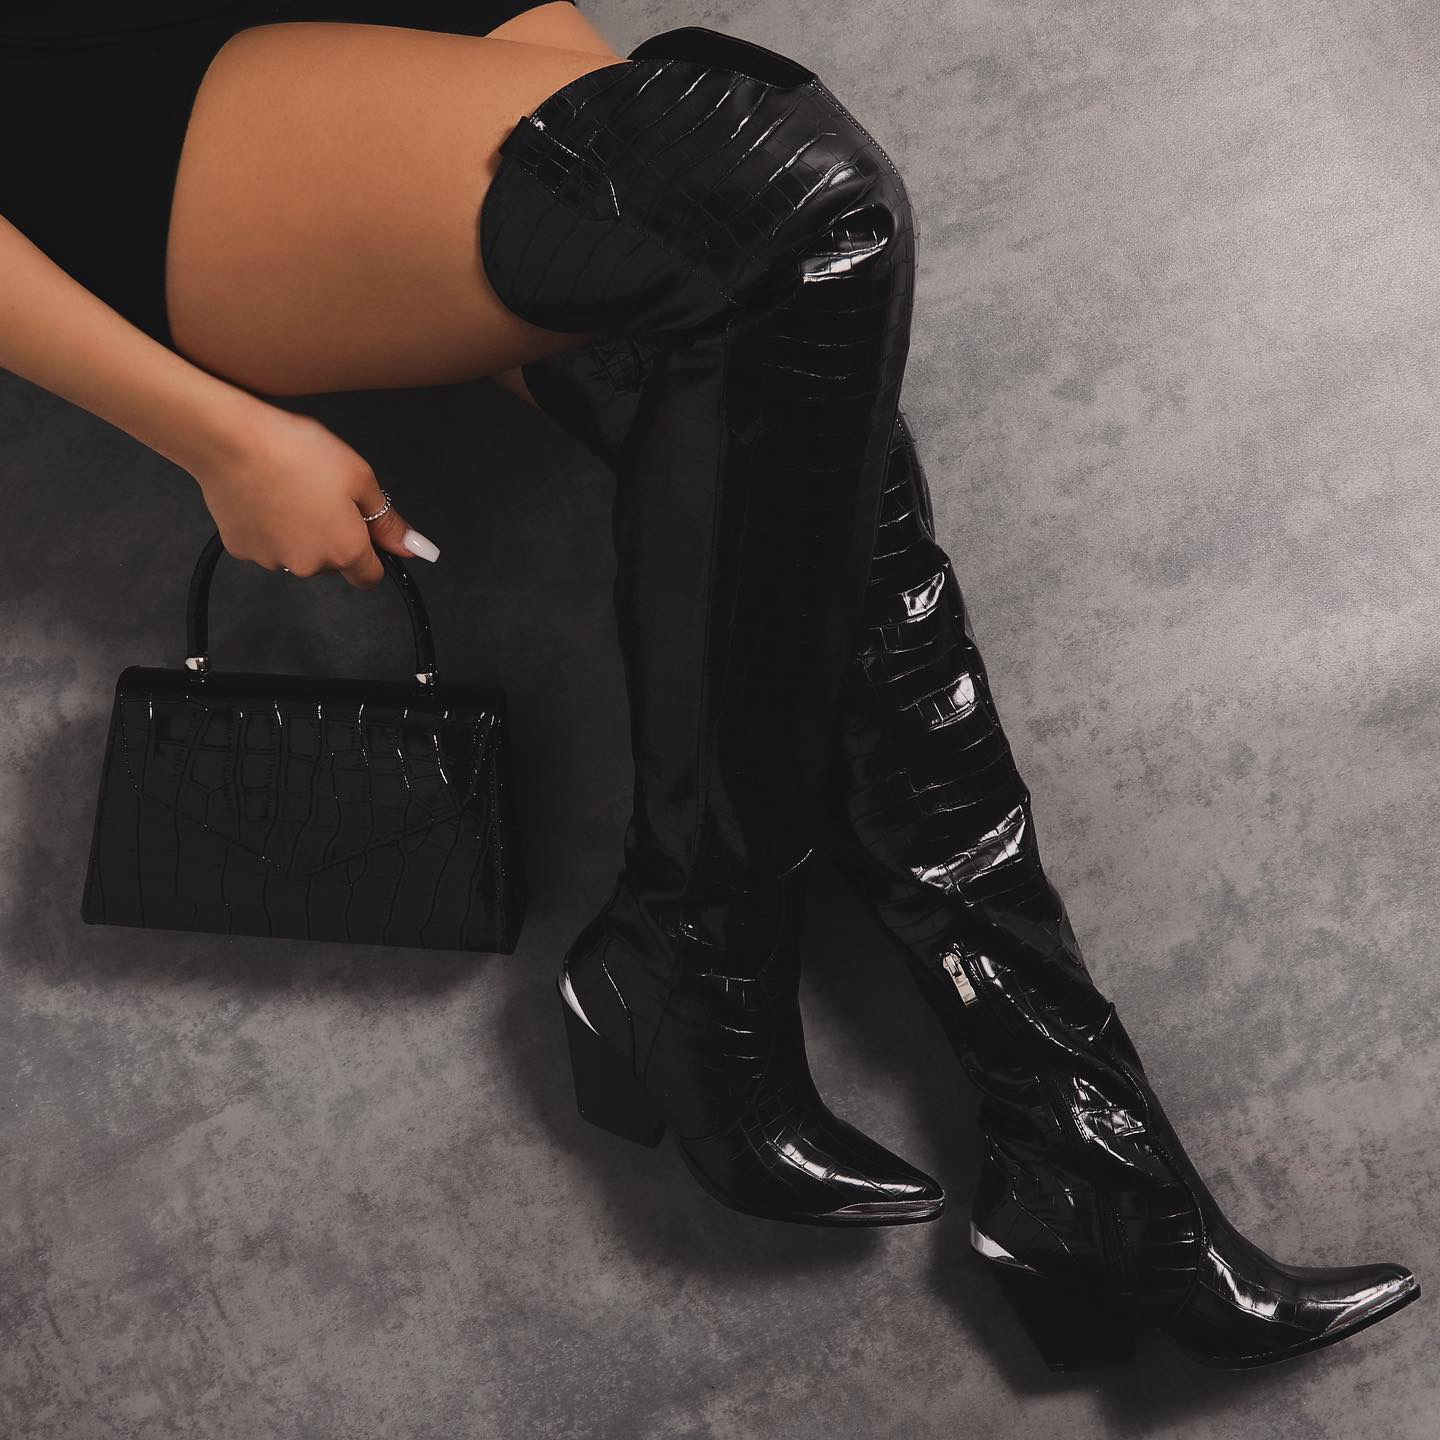 Pride Western Over The Knee Thigh High Long Boot In Black Croc Print Faux Leather